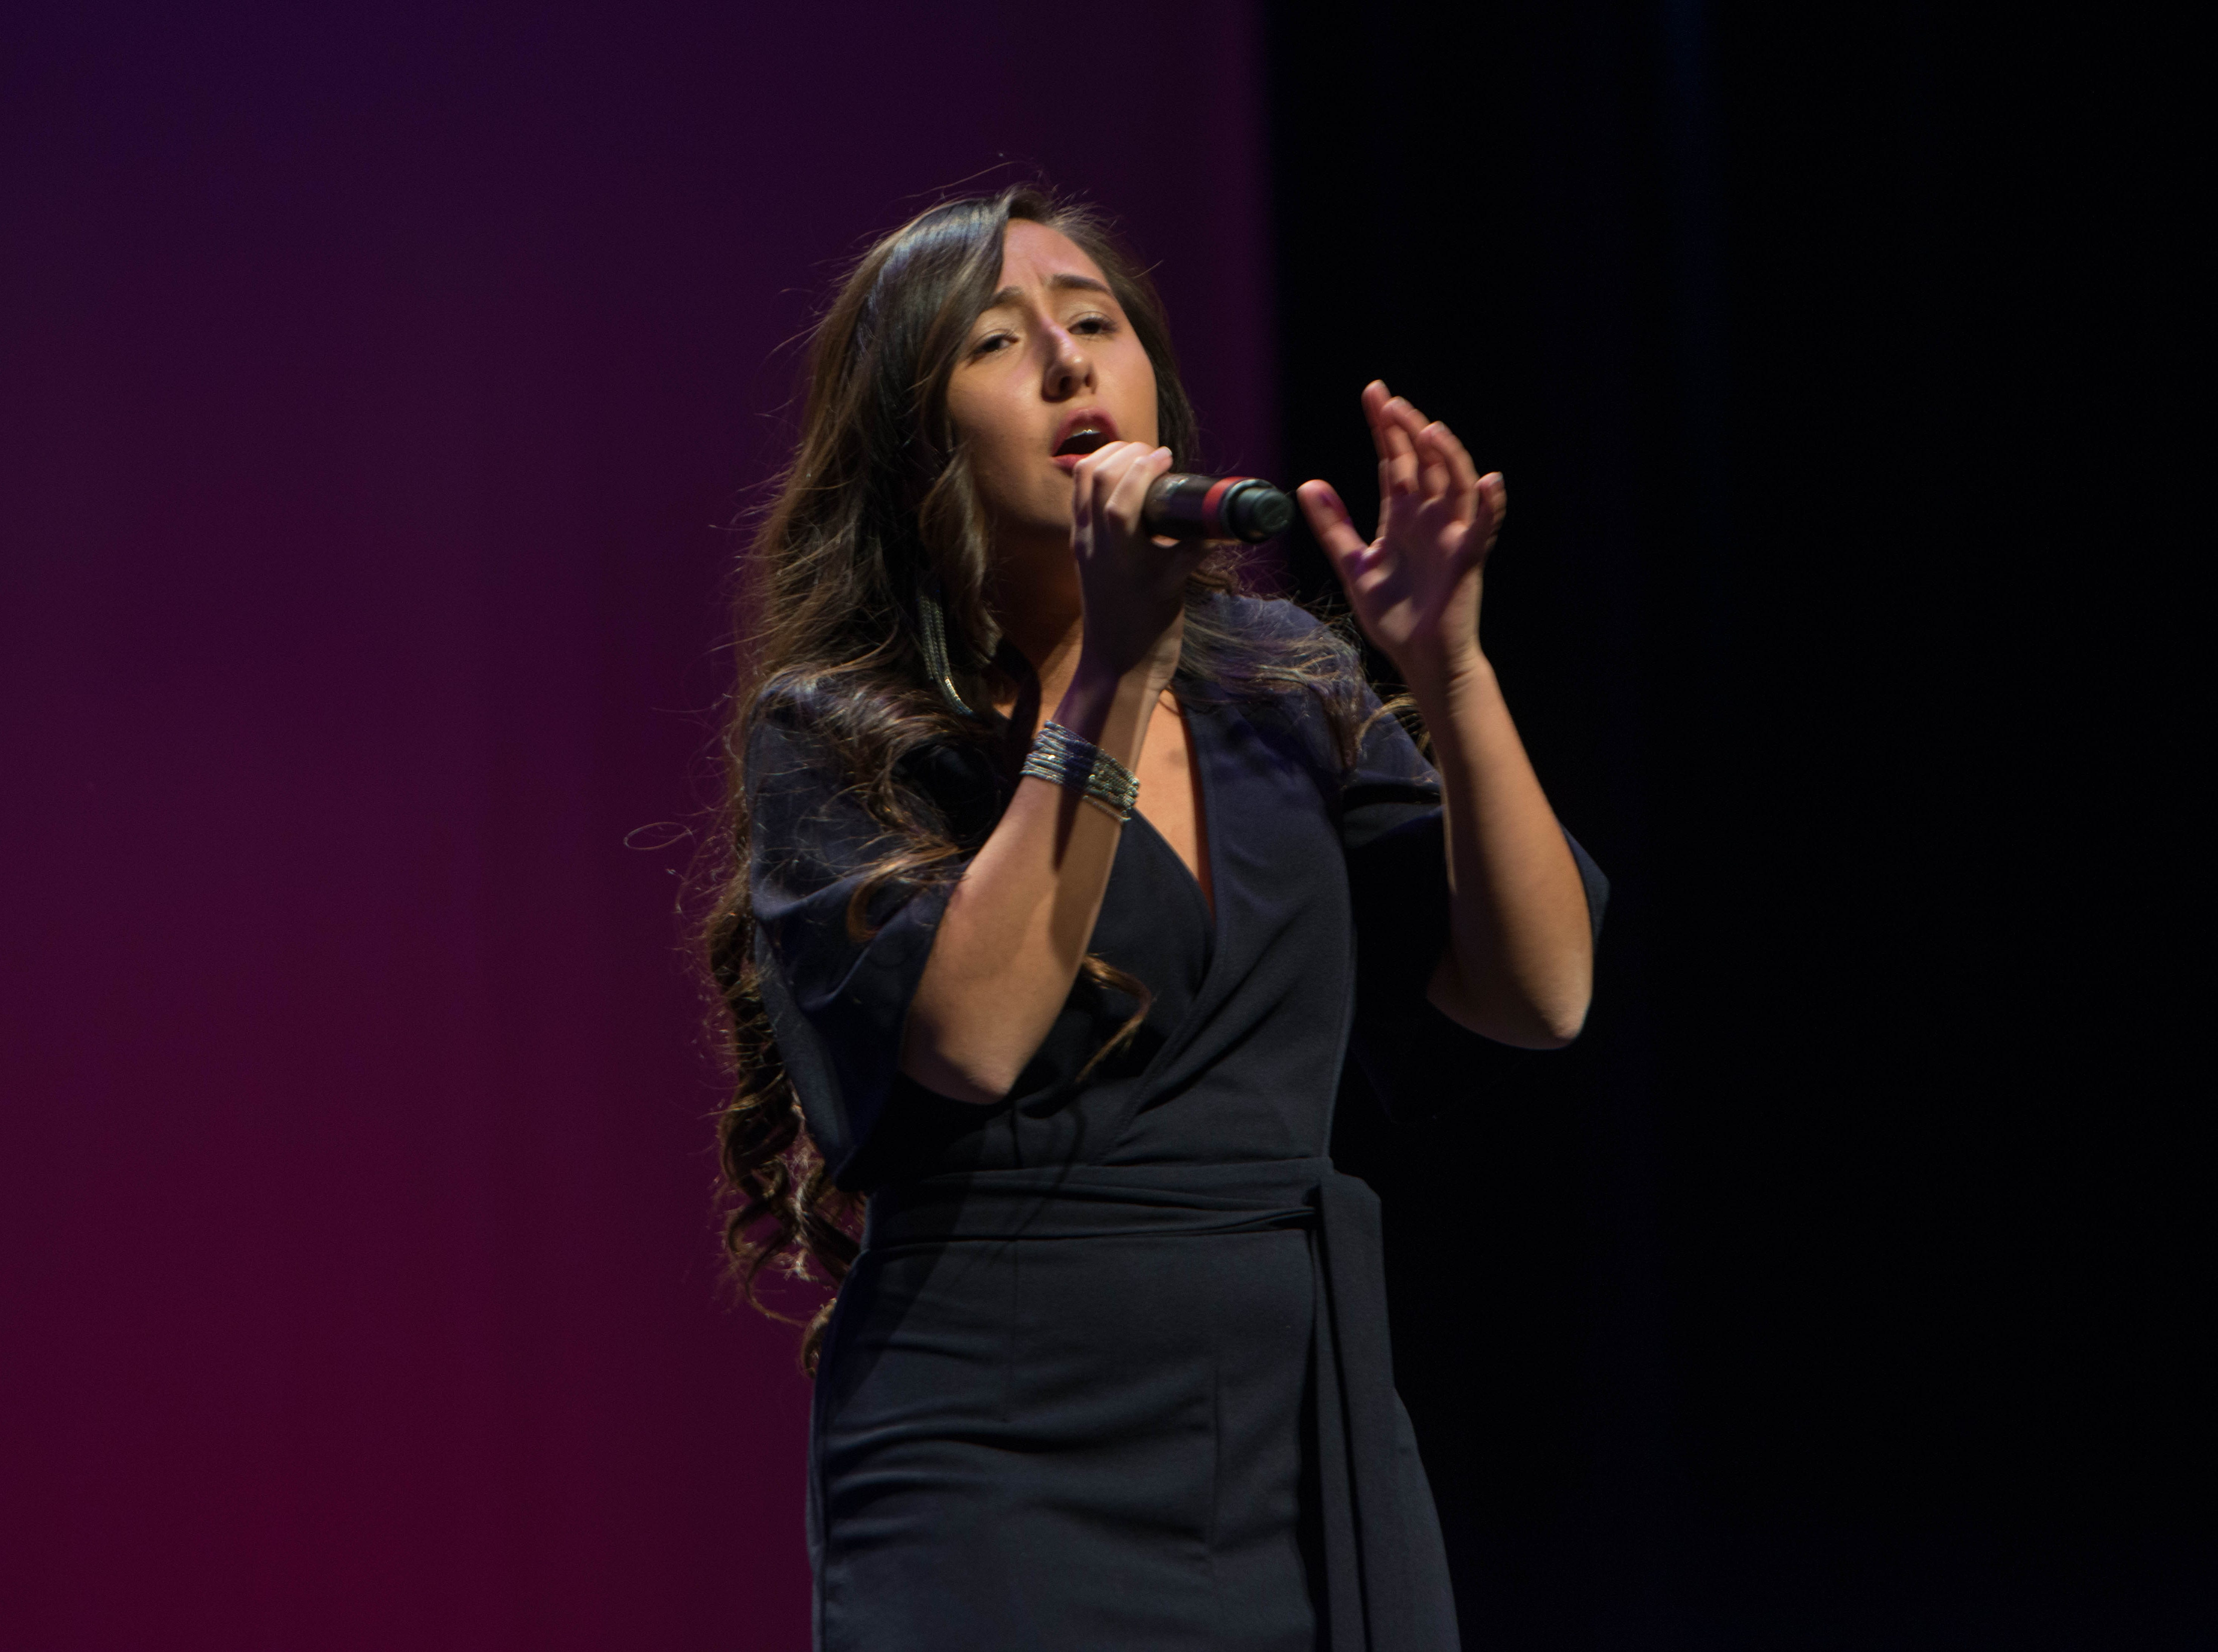 Angelica Muñoz. The 2019 Englewood Idol was held at bergenPAC theater. The singing competition is open to any high school student who currently lives or goes to school in Englewood, NJ. This years winner was Genesis Capellan. 01/11/2019